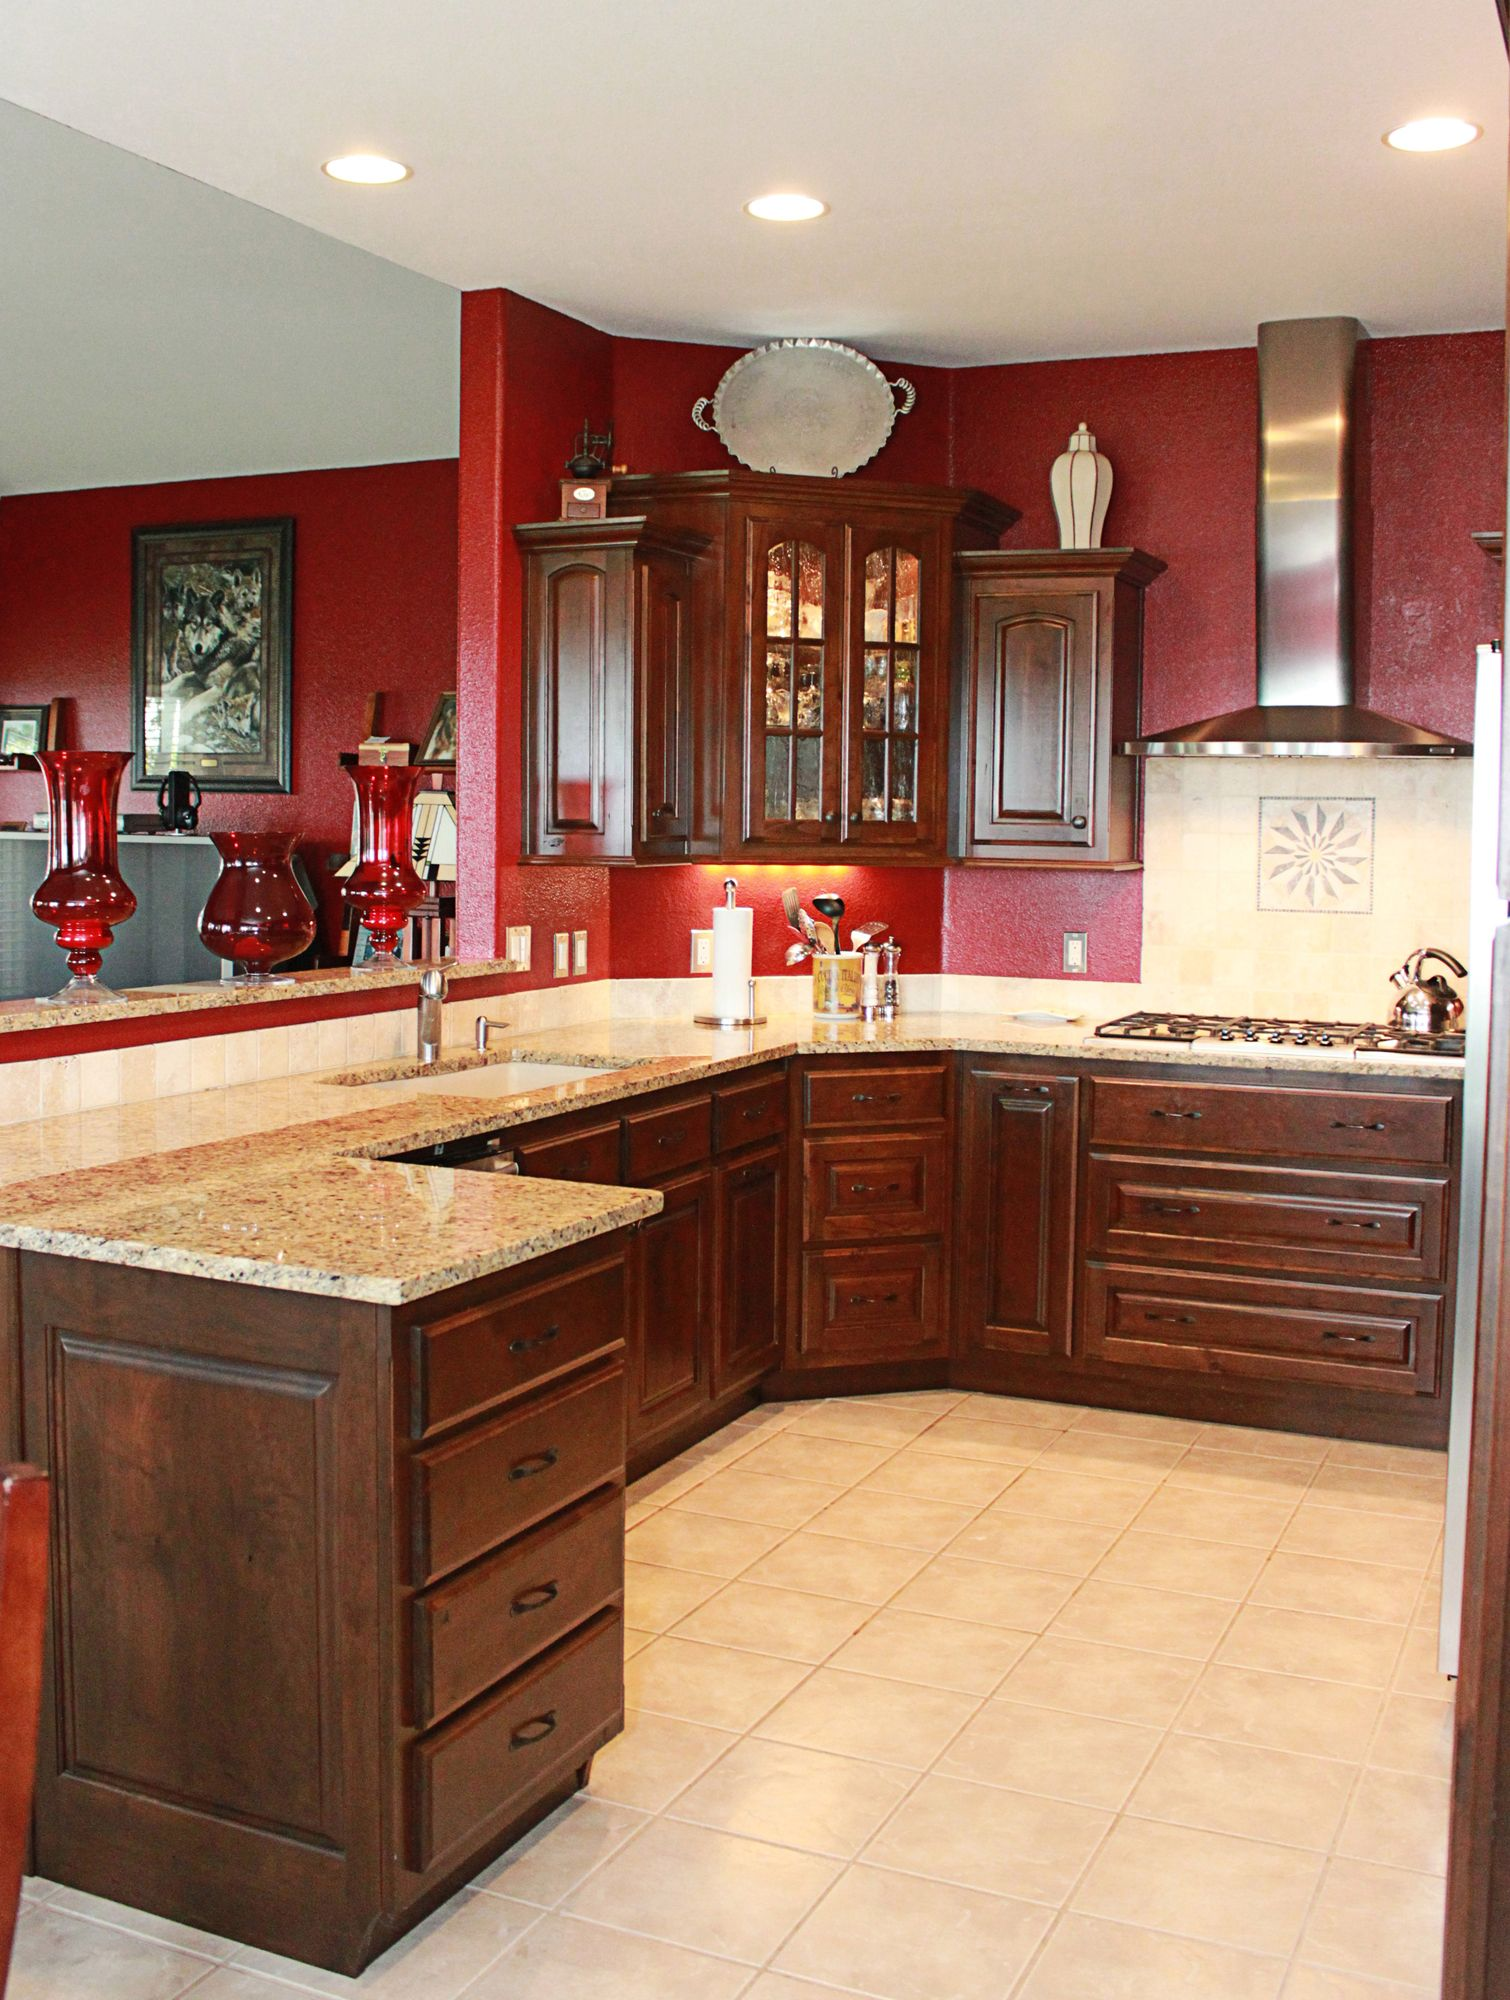 Pin By Cabinets Plus On Rustic Cherry Cabinets Cherry Cabinets Kitchen Cherry Kitchen Rustic Cherry Cabinets